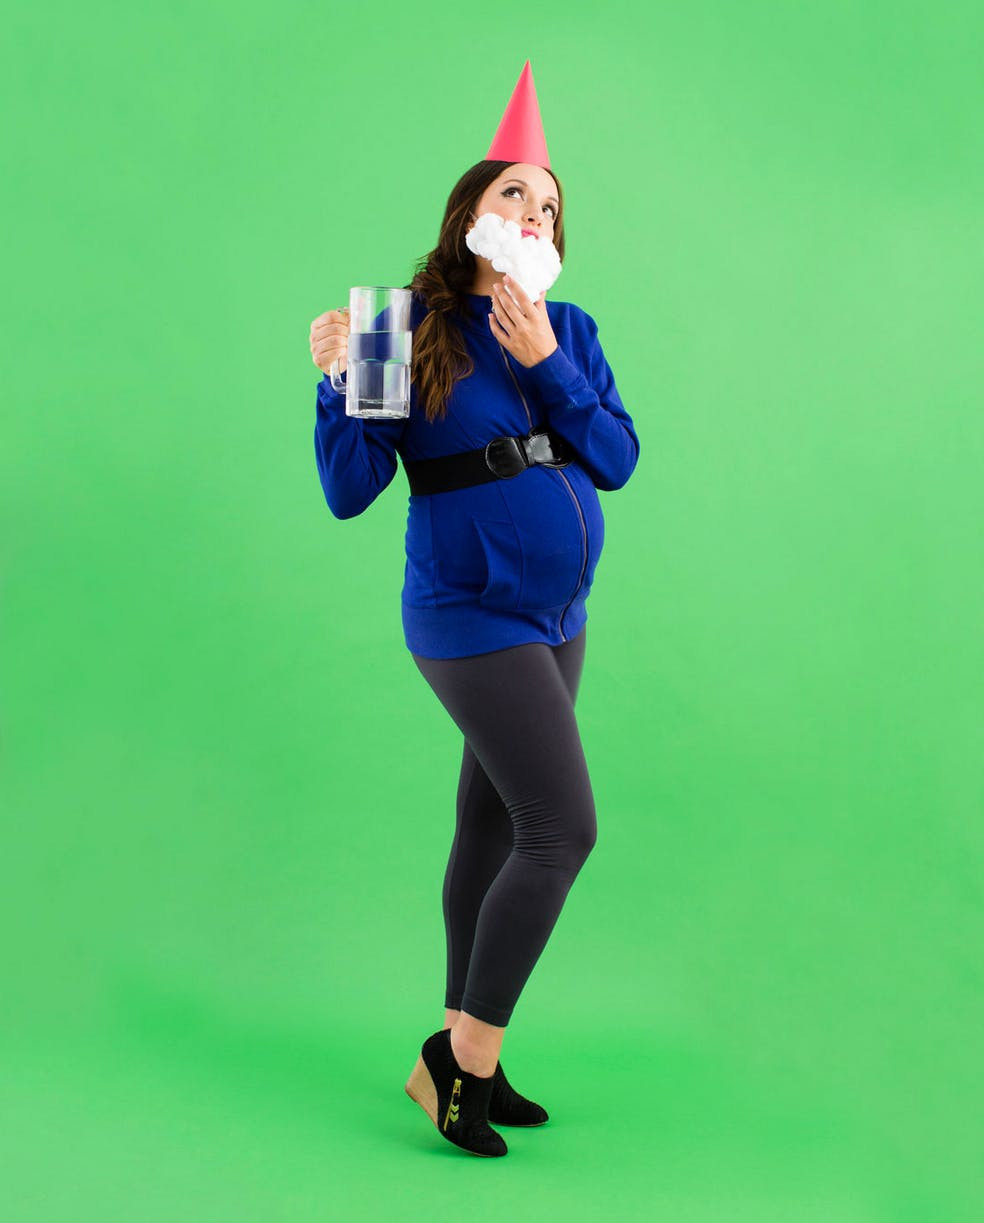 Best ideas about DIY Pregnant Halloween Costume . Save or Pin 8 DIY Maternity Halloween Costumes for Pregnant Women Now.